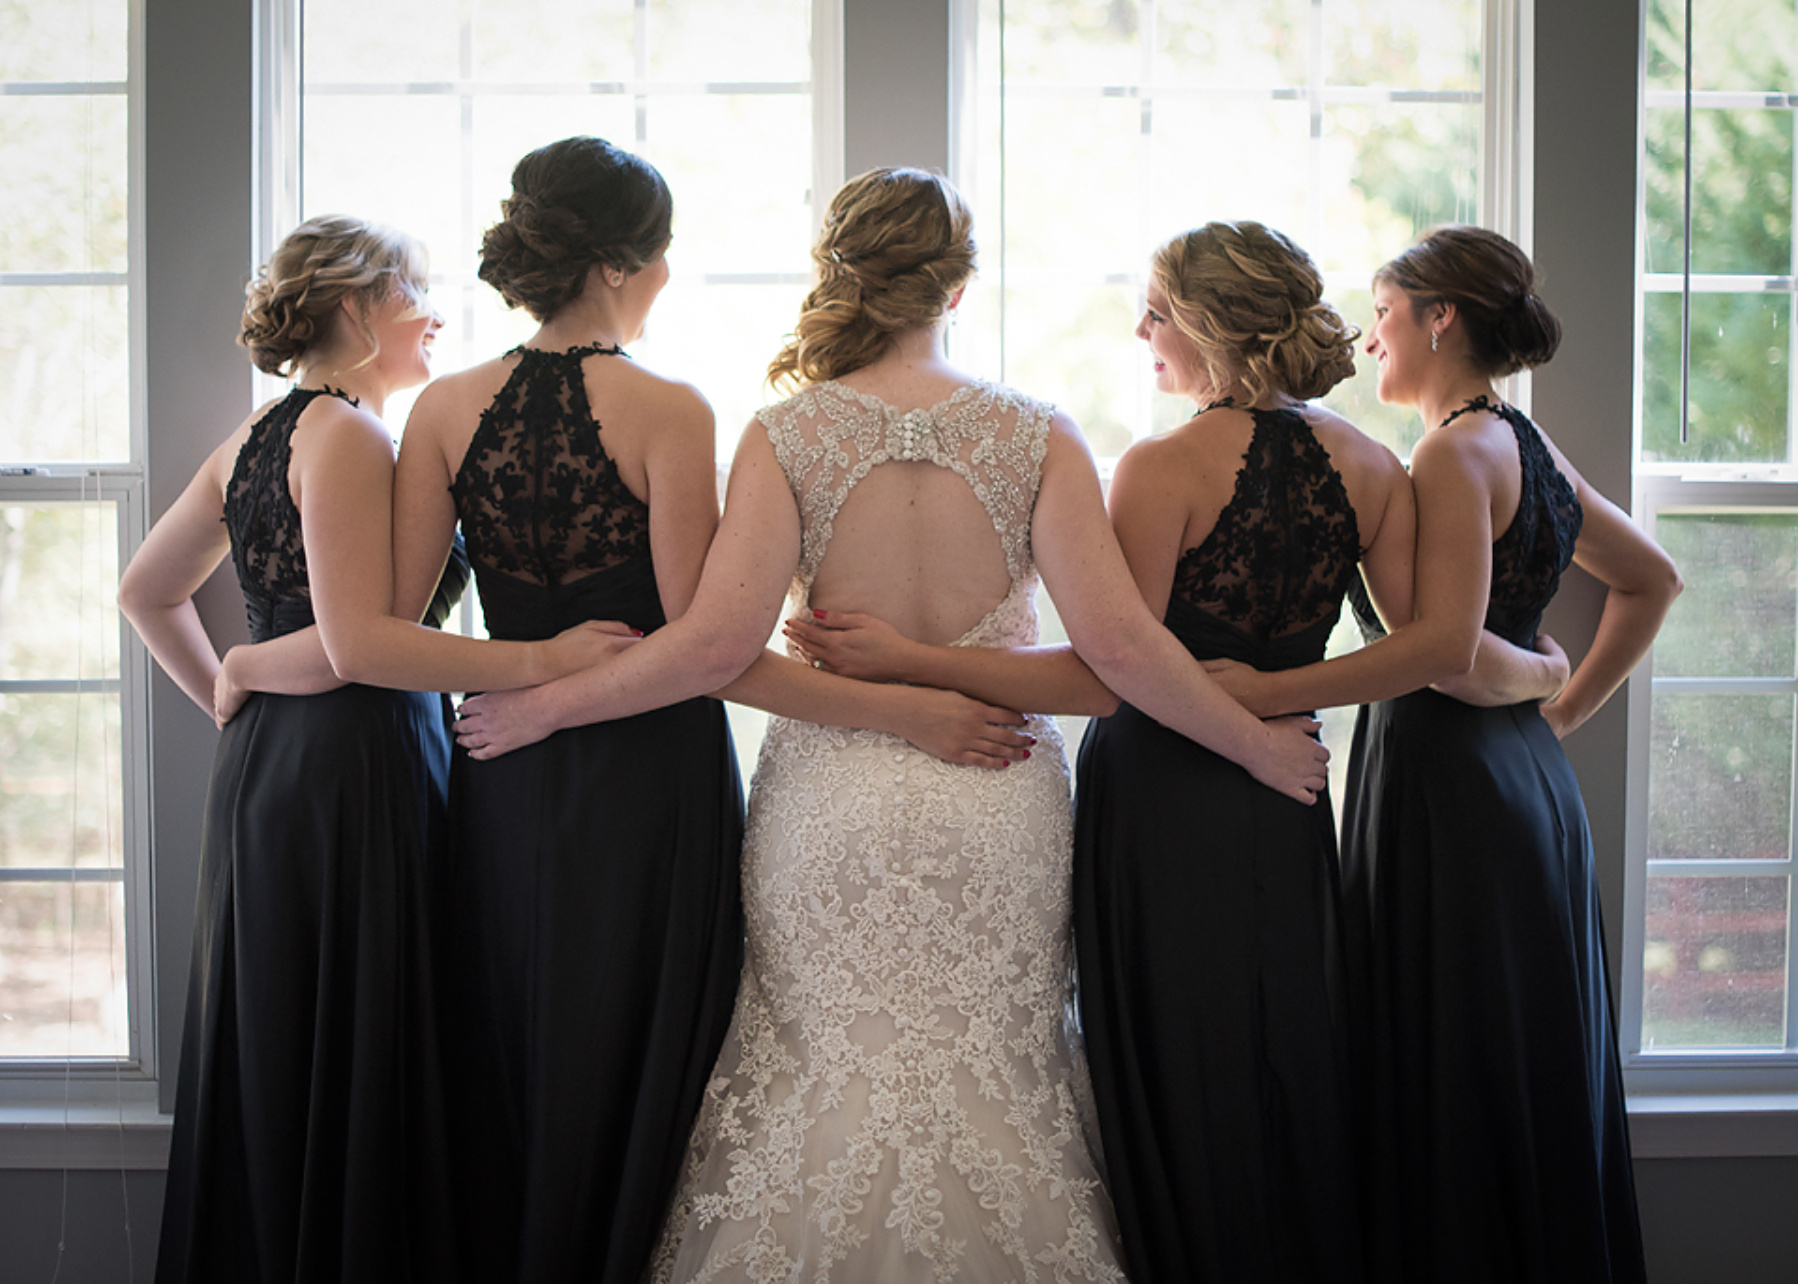 Choose a simple color and cut and focus on the back! These beautiful dresses have a zip-up lacy back that the guests can see when your bridesmaids are standing up at the alter and walking down the aisle.